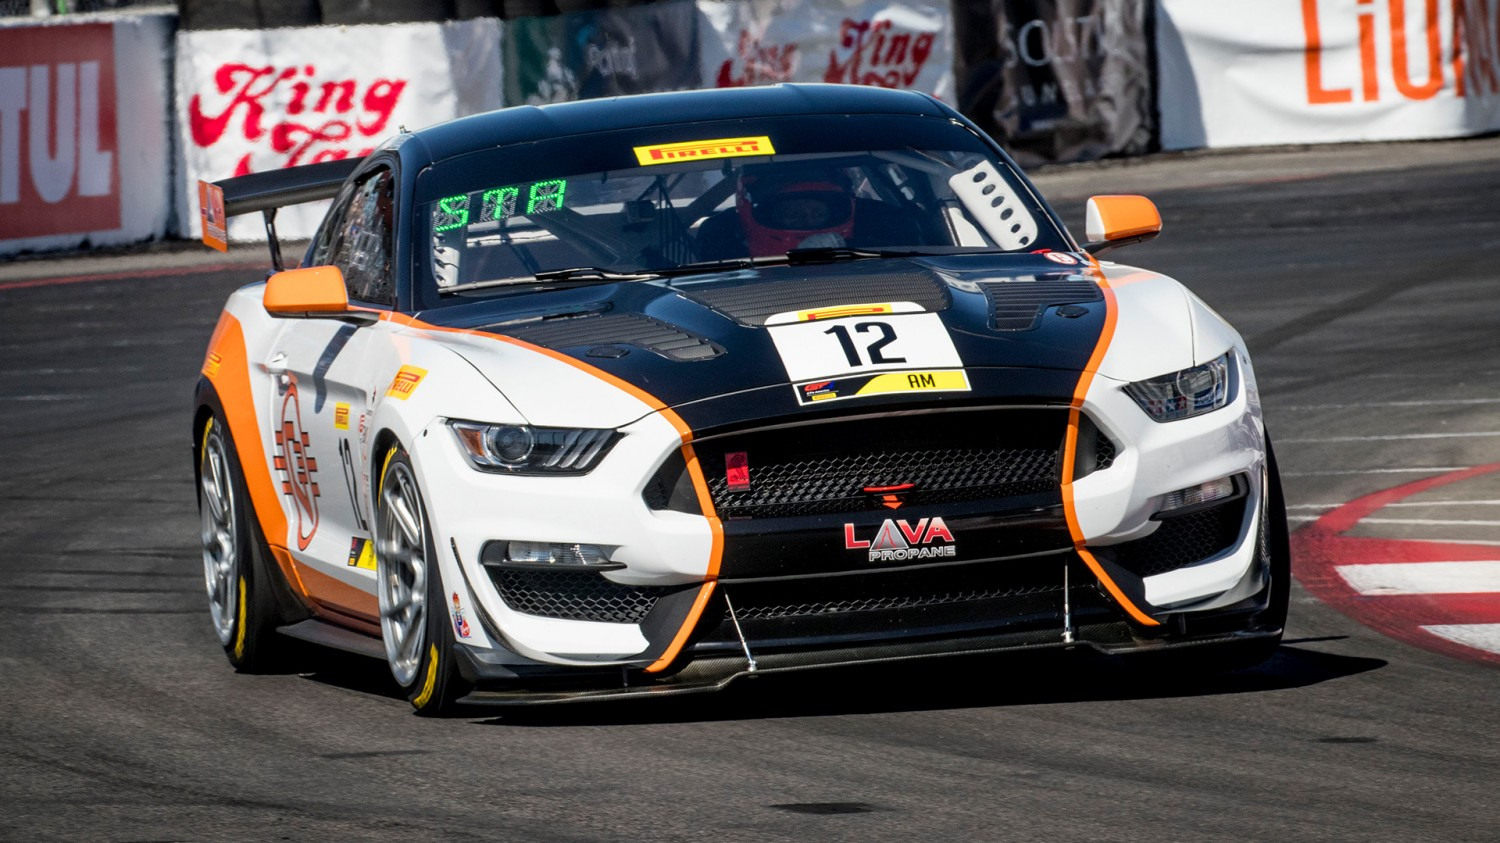 An Amateur Takes the Lead Again in Practice 2 at the Streets of Long Beach